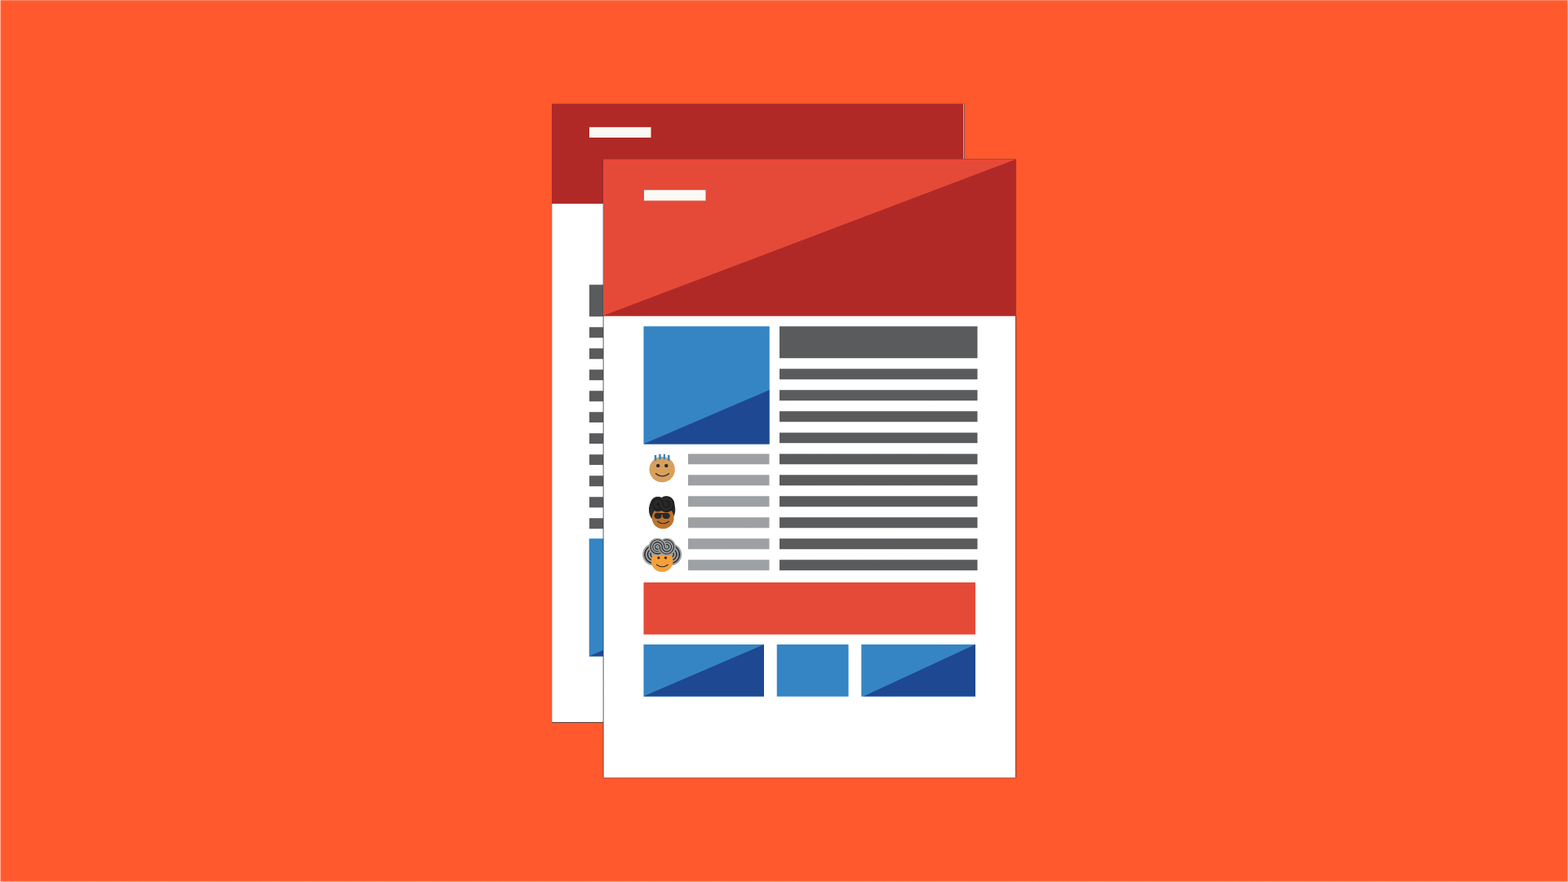 Illustration of two websites layered